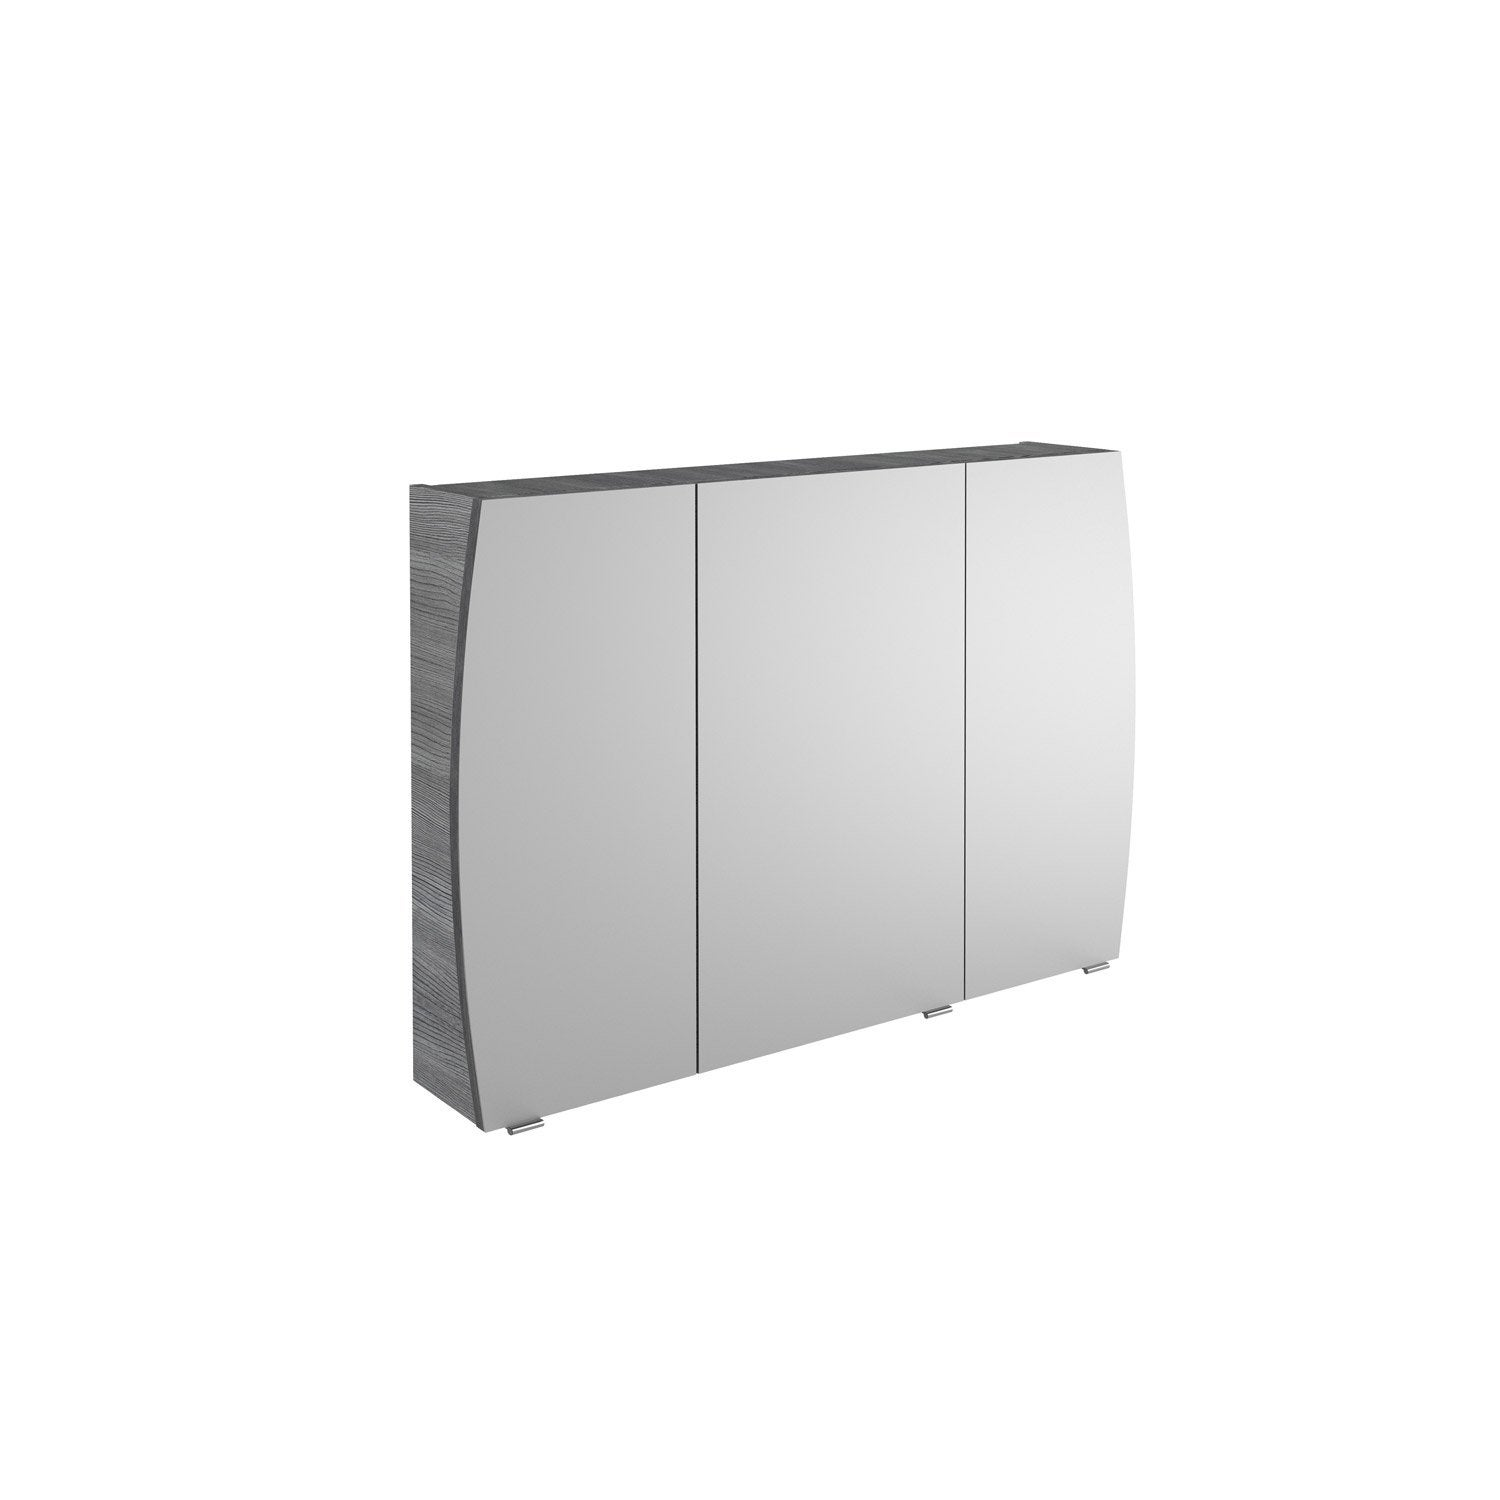 armoire de toilette l 100 cm gris structur image leroy merlin. Black Bedroom Furniture Sets. Home Design Ideas